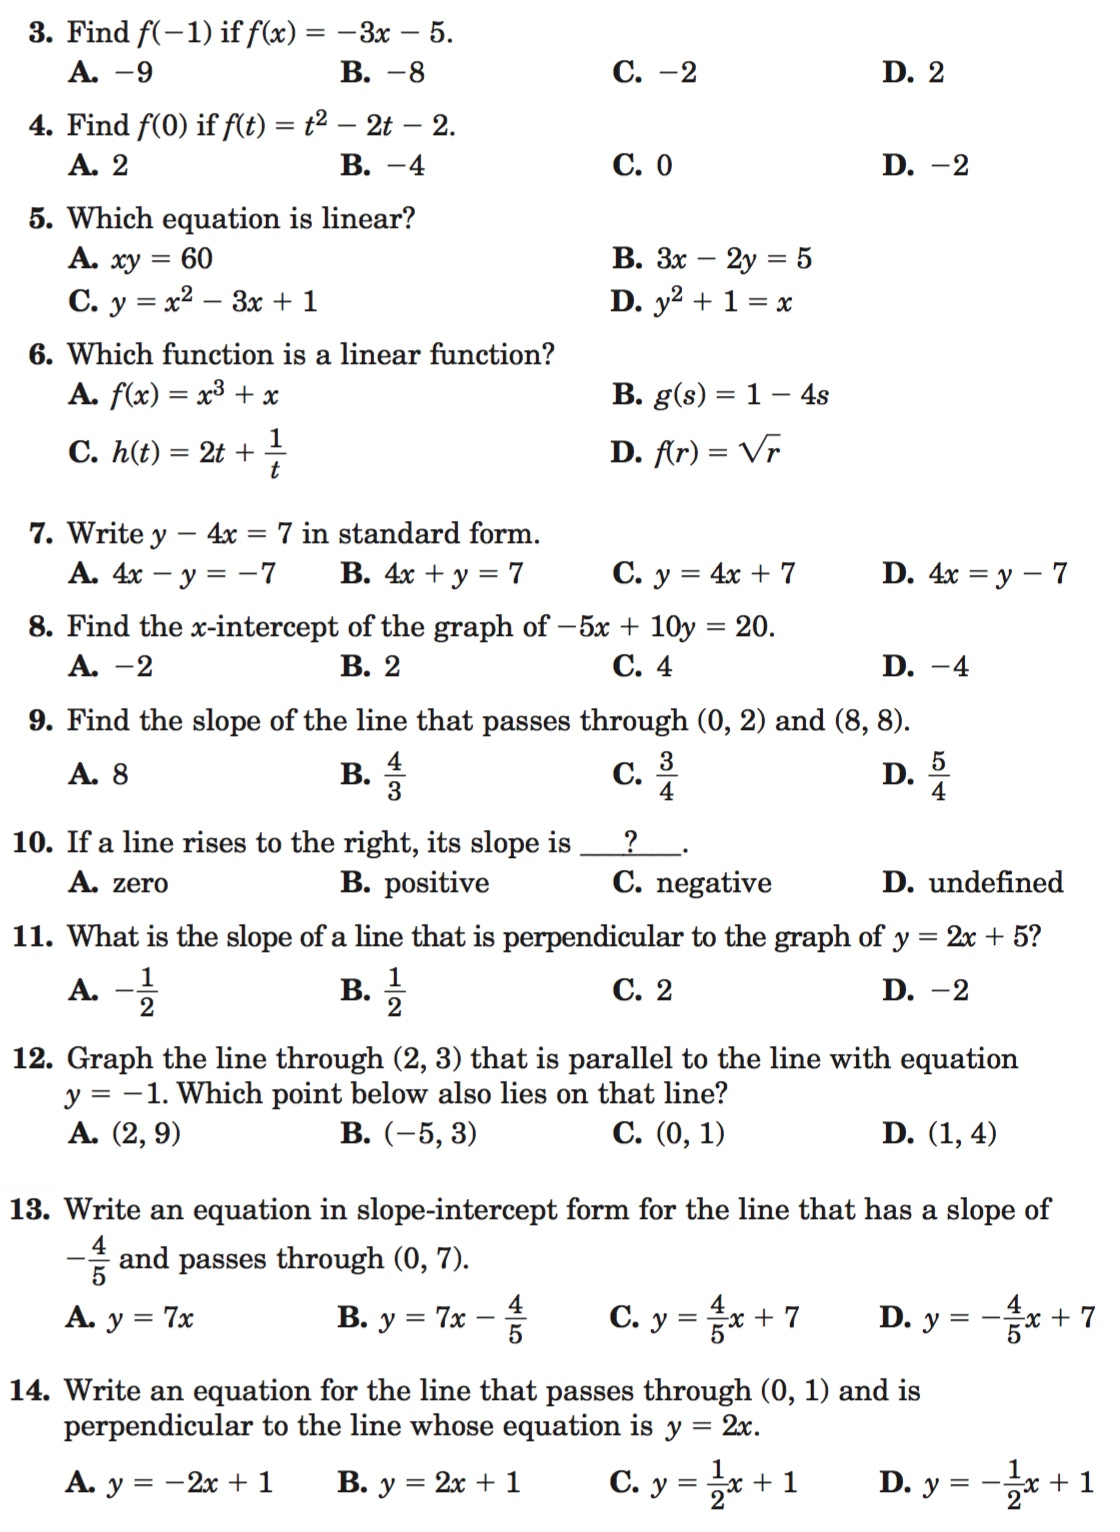 Math Worksheets For Algebra 2 - algebra 2 worksheets conic ...